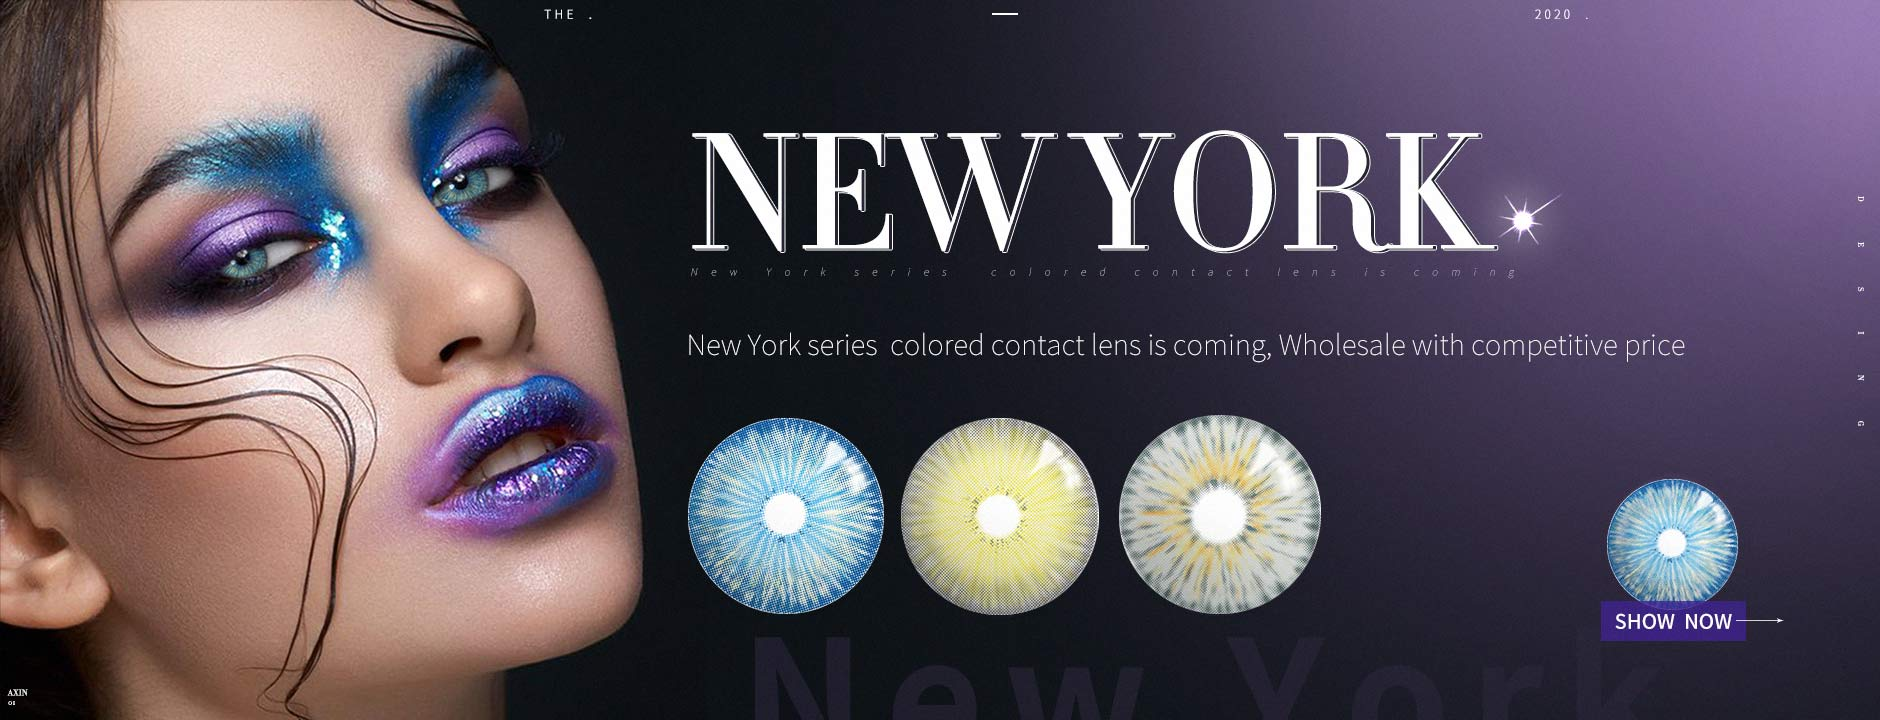 new york contact lenses from freshlady